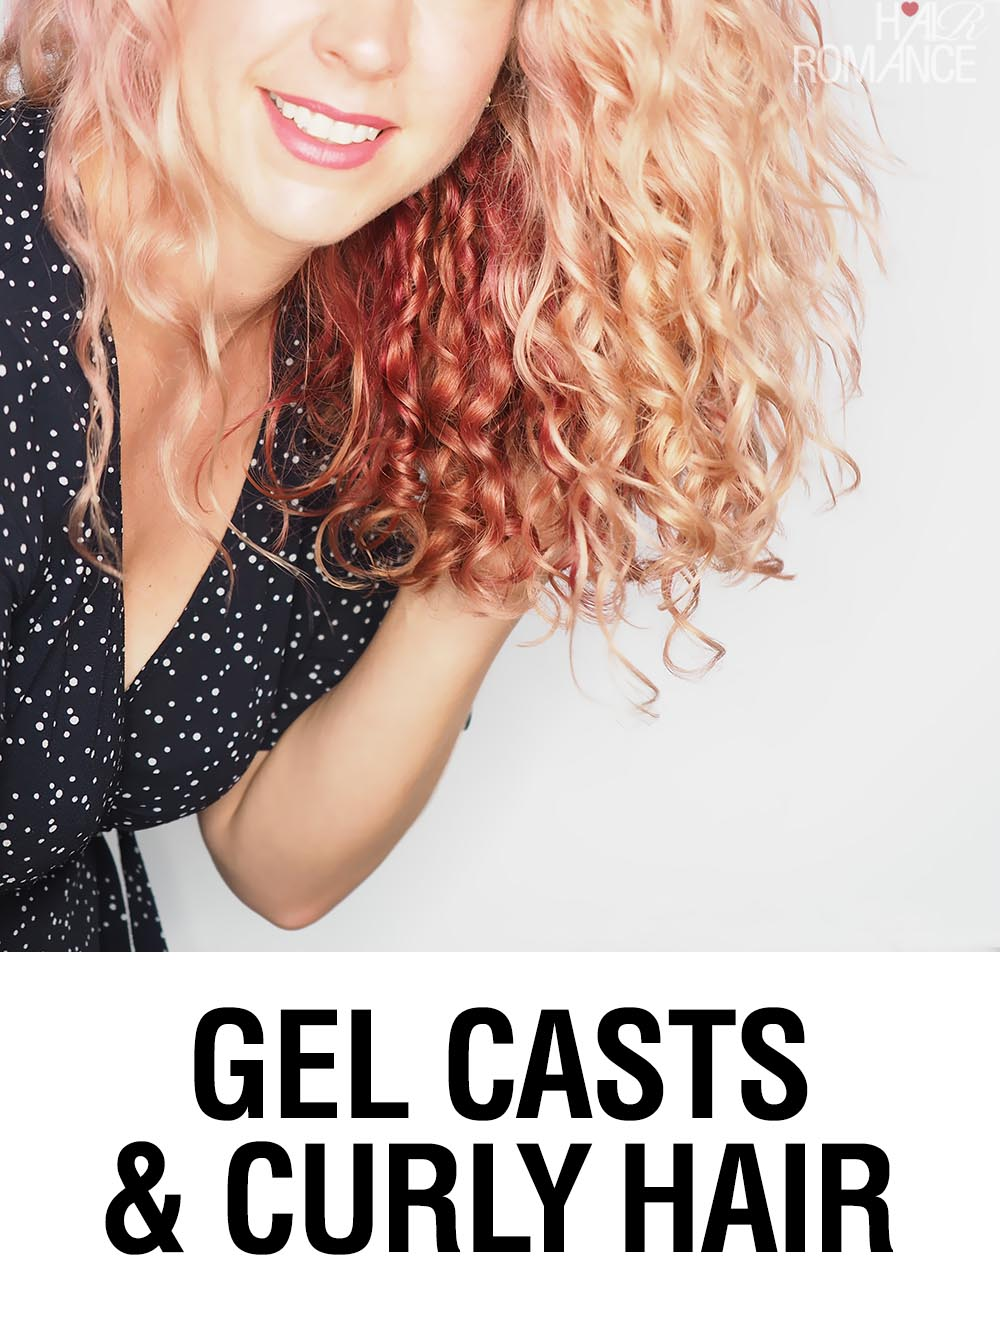 Gel cast in curly hair - Hair Romance